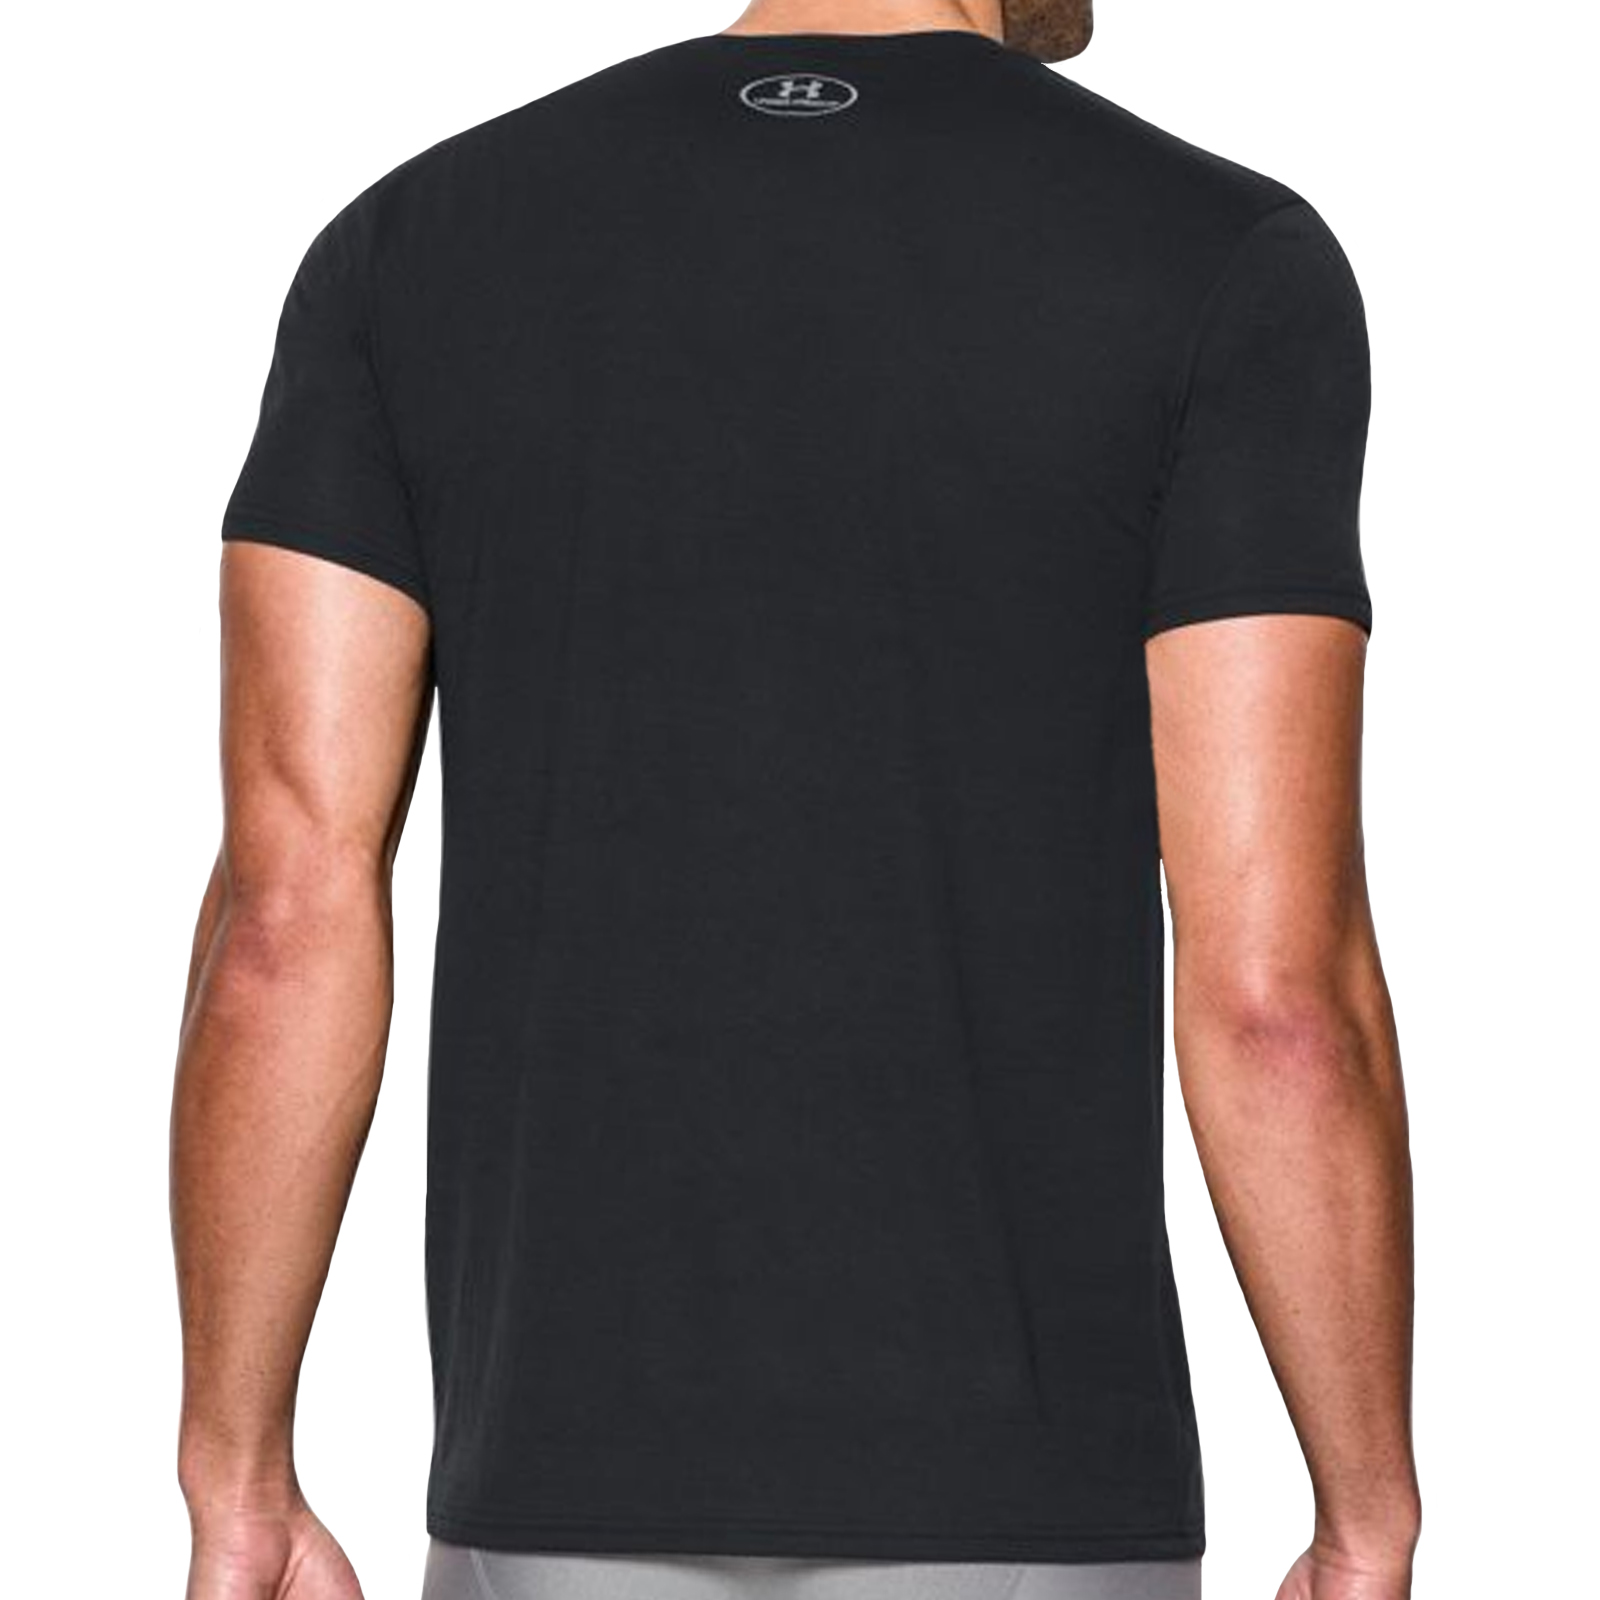 Ejis Sweat Proof Undershirts Men w/Sweat Pads & Silver, Micro Modal Crew Neck Shop Best Sellers · Deals of the Day · Fast Shipping · Read Ratings & Reviews2,,+ followers on Twitter.